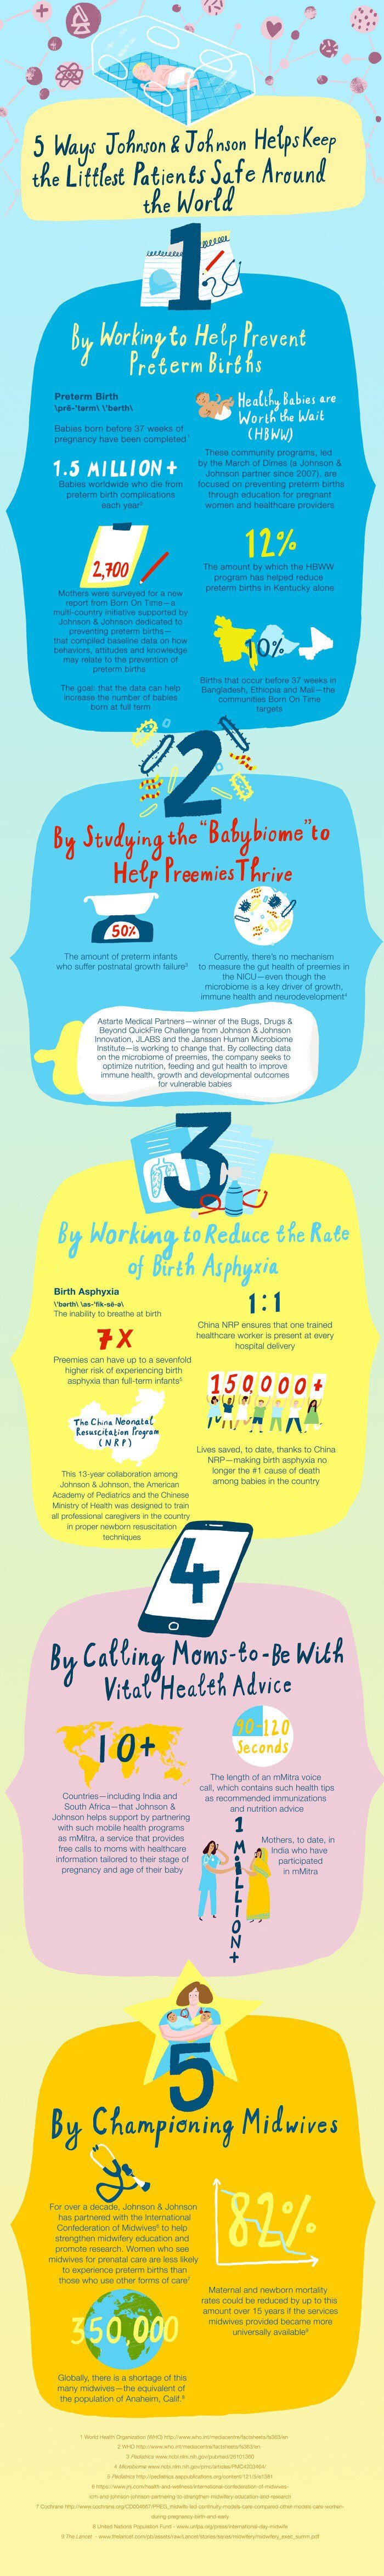 Infographic of 5 Ways Johnson & Johnson Helps Keep Babies Safe Around The World